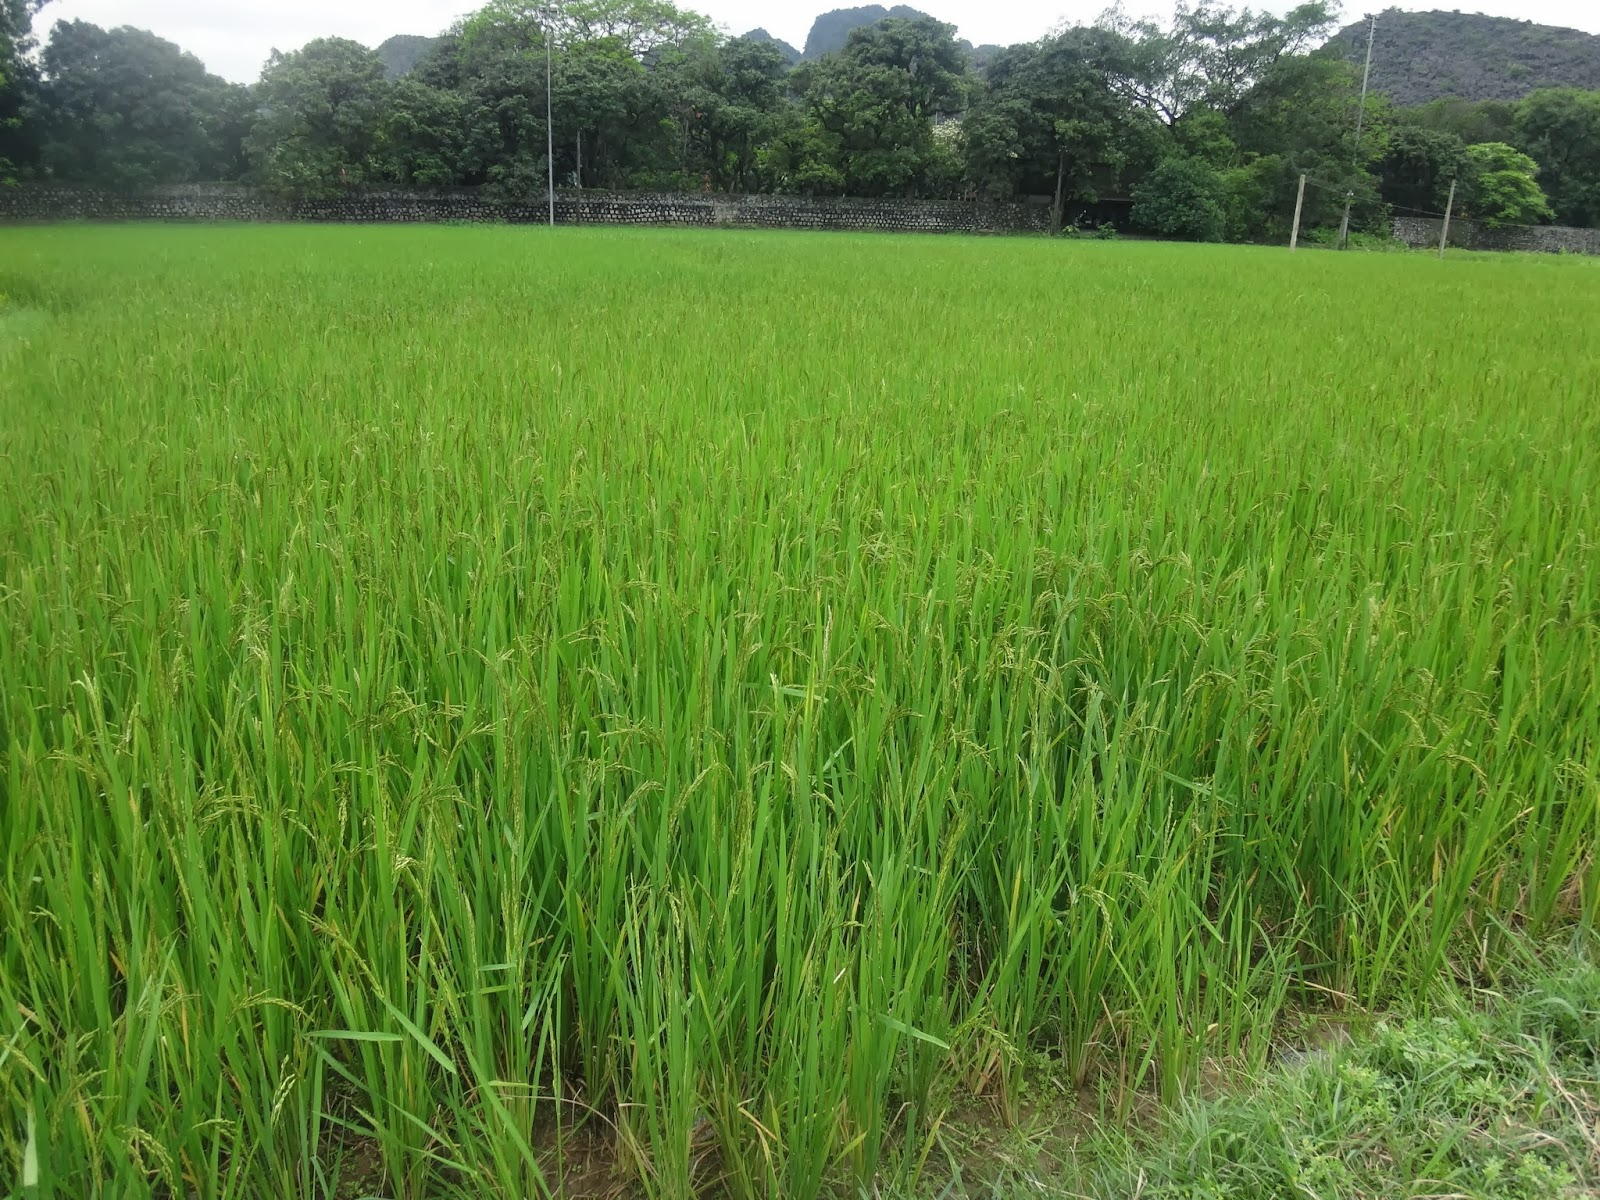 Greenary paddy field can be seen around Hou Lu capital in Vietnam